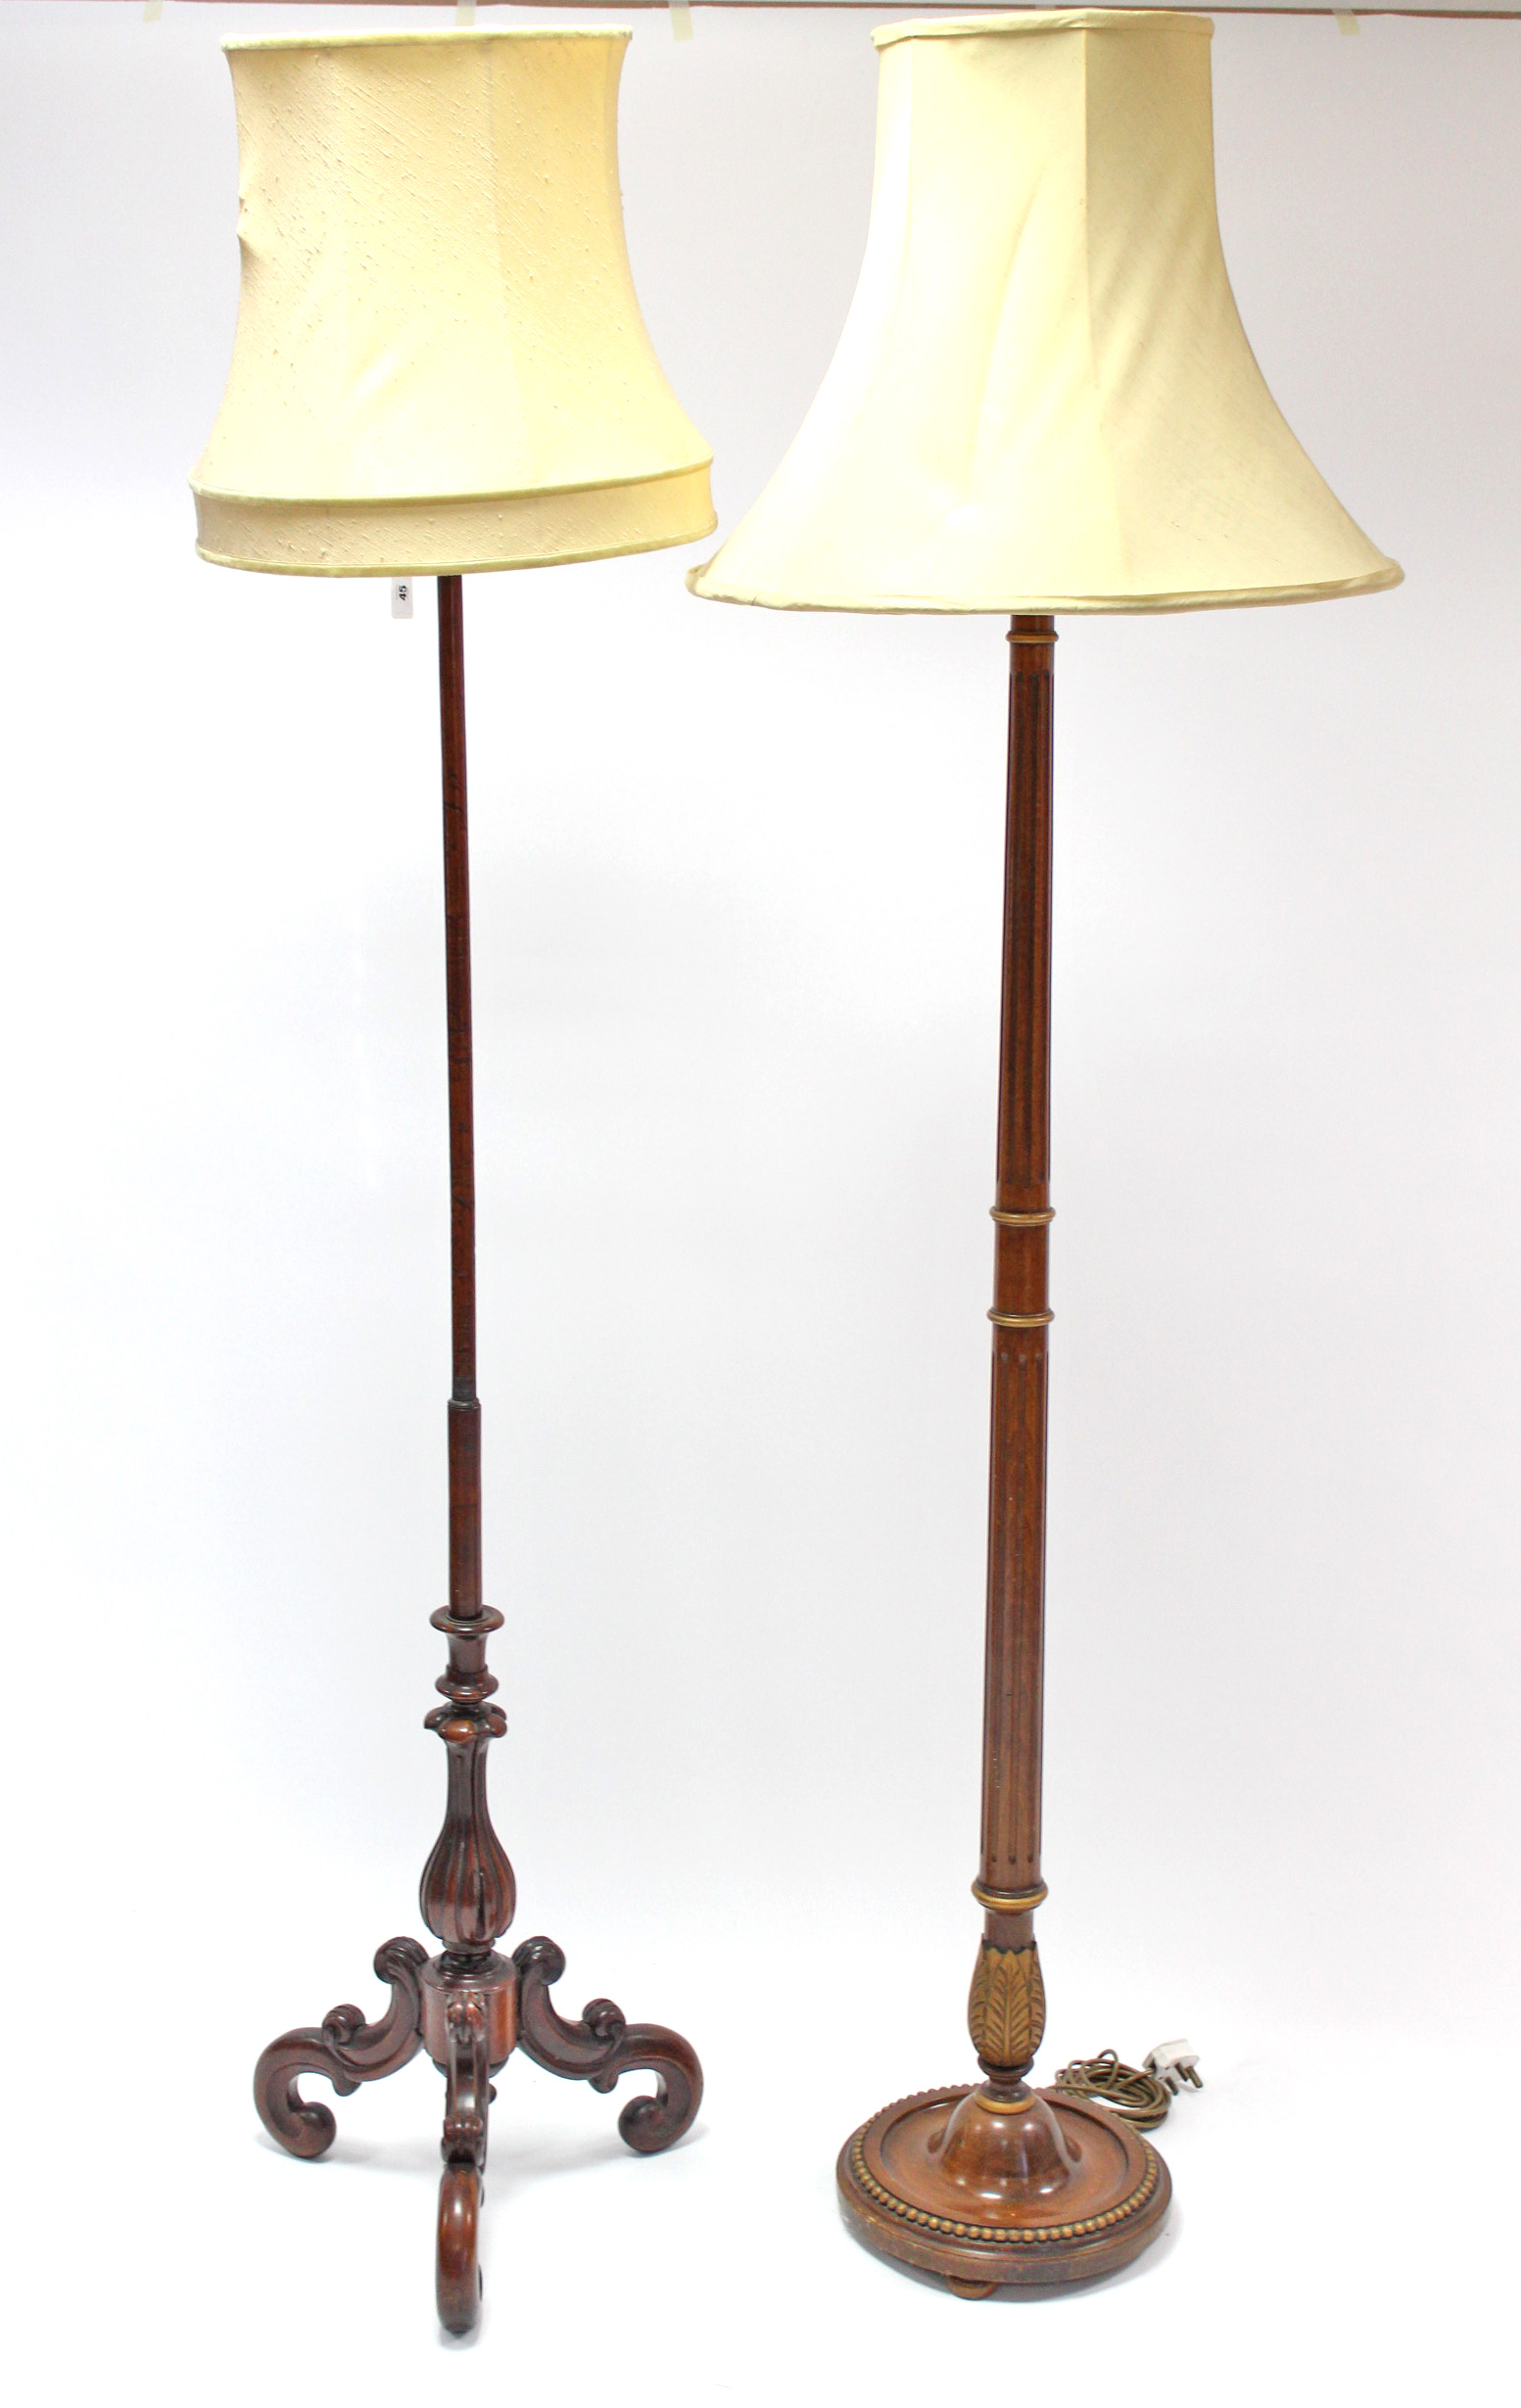 Lot 45 - A 19th century mahogany pole-banner screen (converted to a standard lamp); together with another